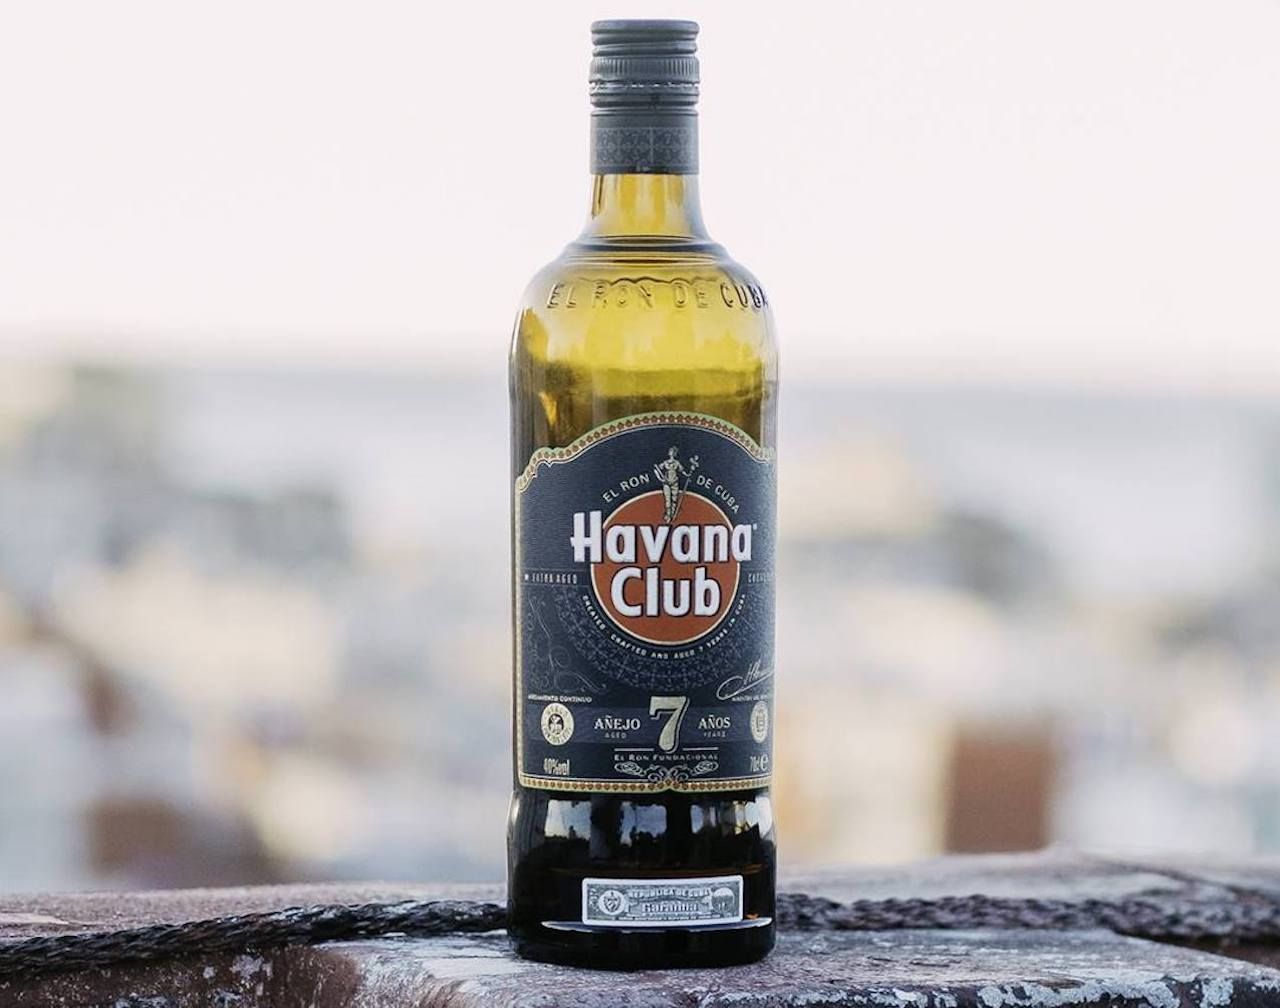 Havana Club rum aged 7 years